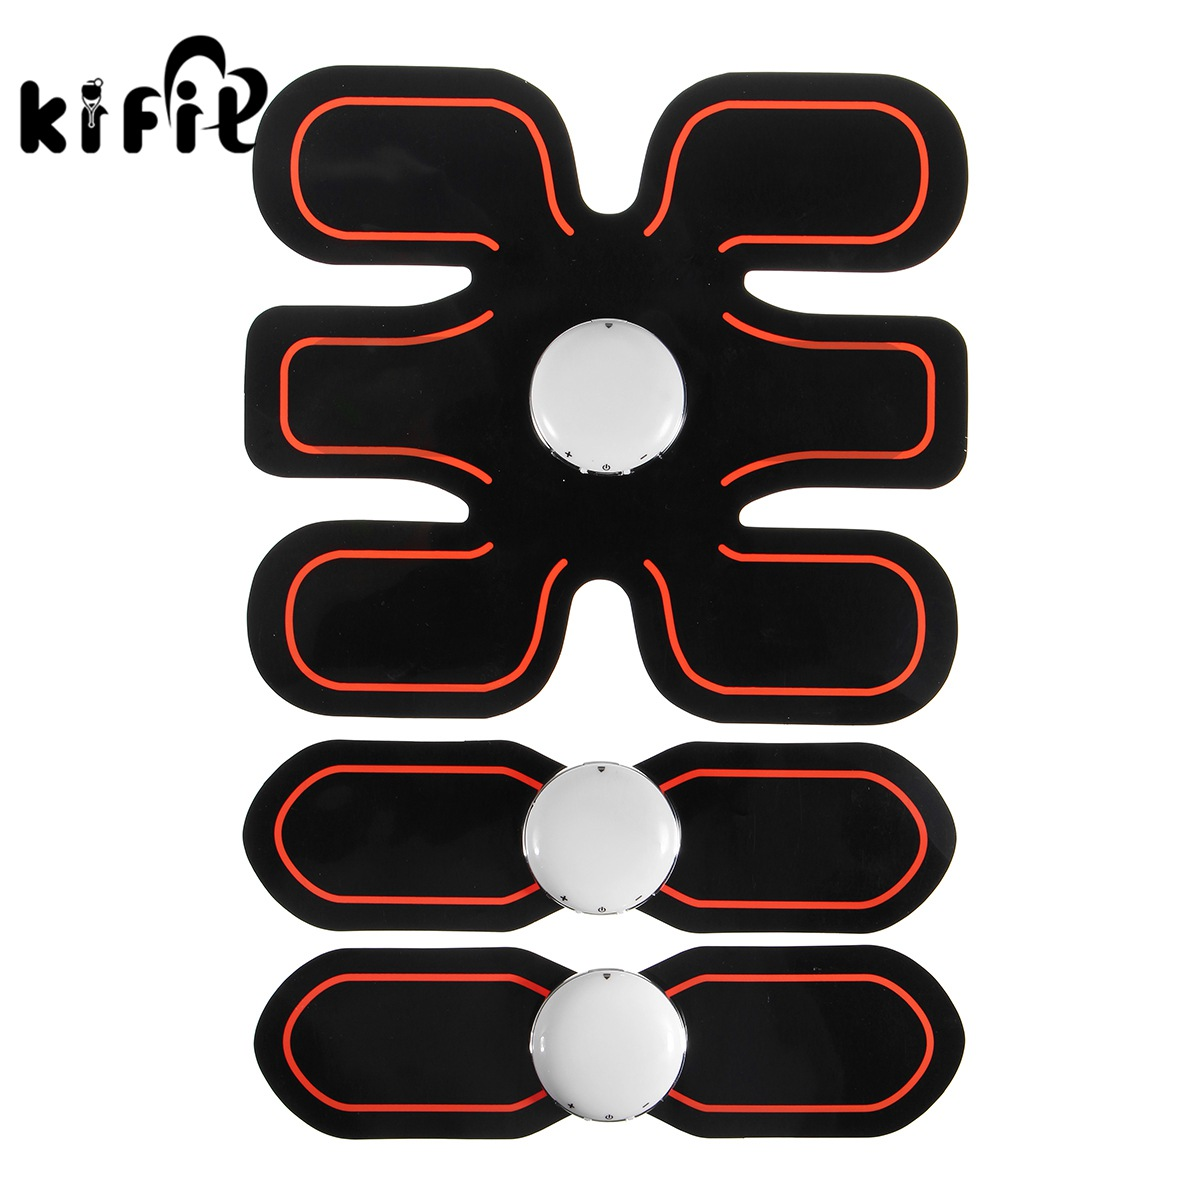 Kifit Muscle Training Gear Training Fit Body Exercise Shape Fitness Tool Home Use Pad Electric Weight Loss Slimming Massager 1005f fitness equipment ultrathin body massager power board exercise power plate for slimming blood circulaation machine 220v